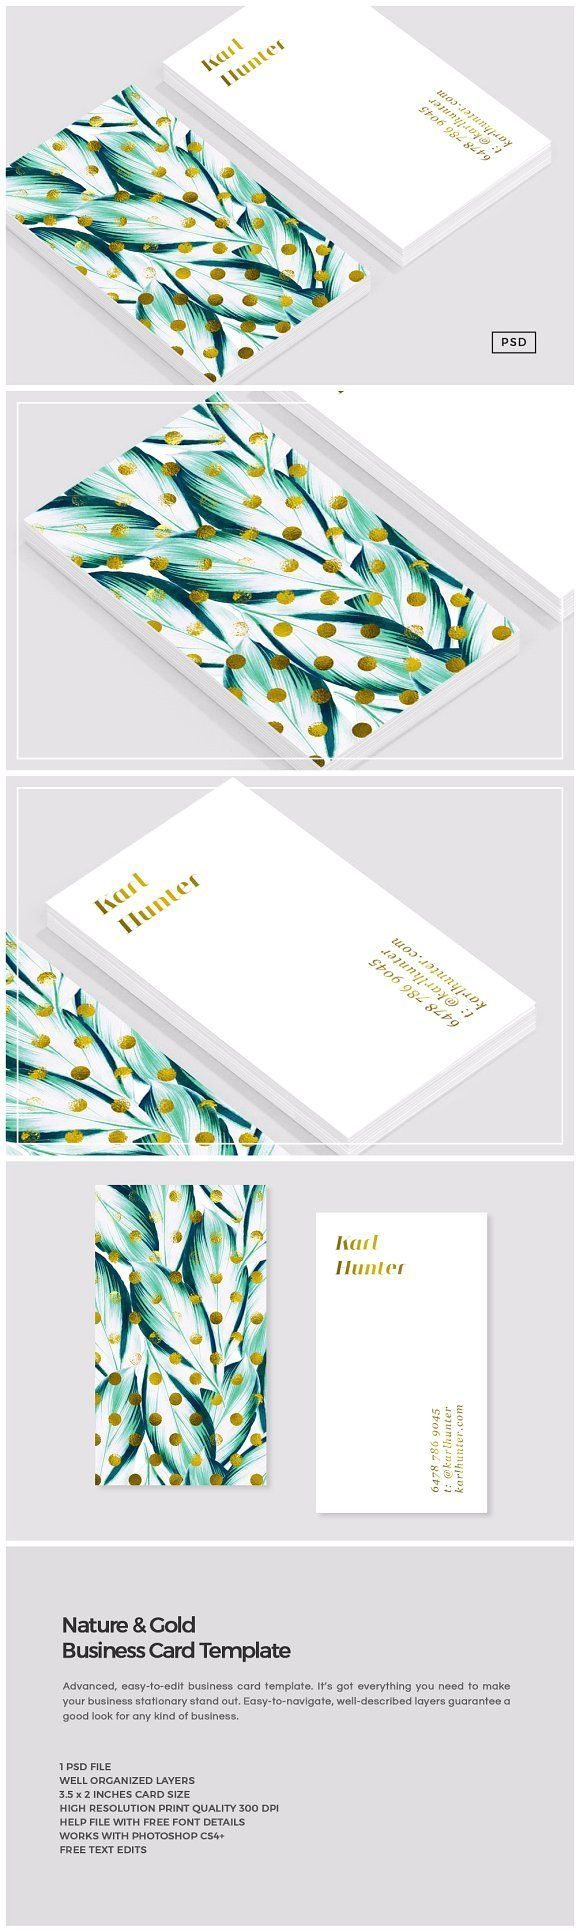 867 best business card designs images on pinterest business cards nature gold business card template by the design label on creative market reheart